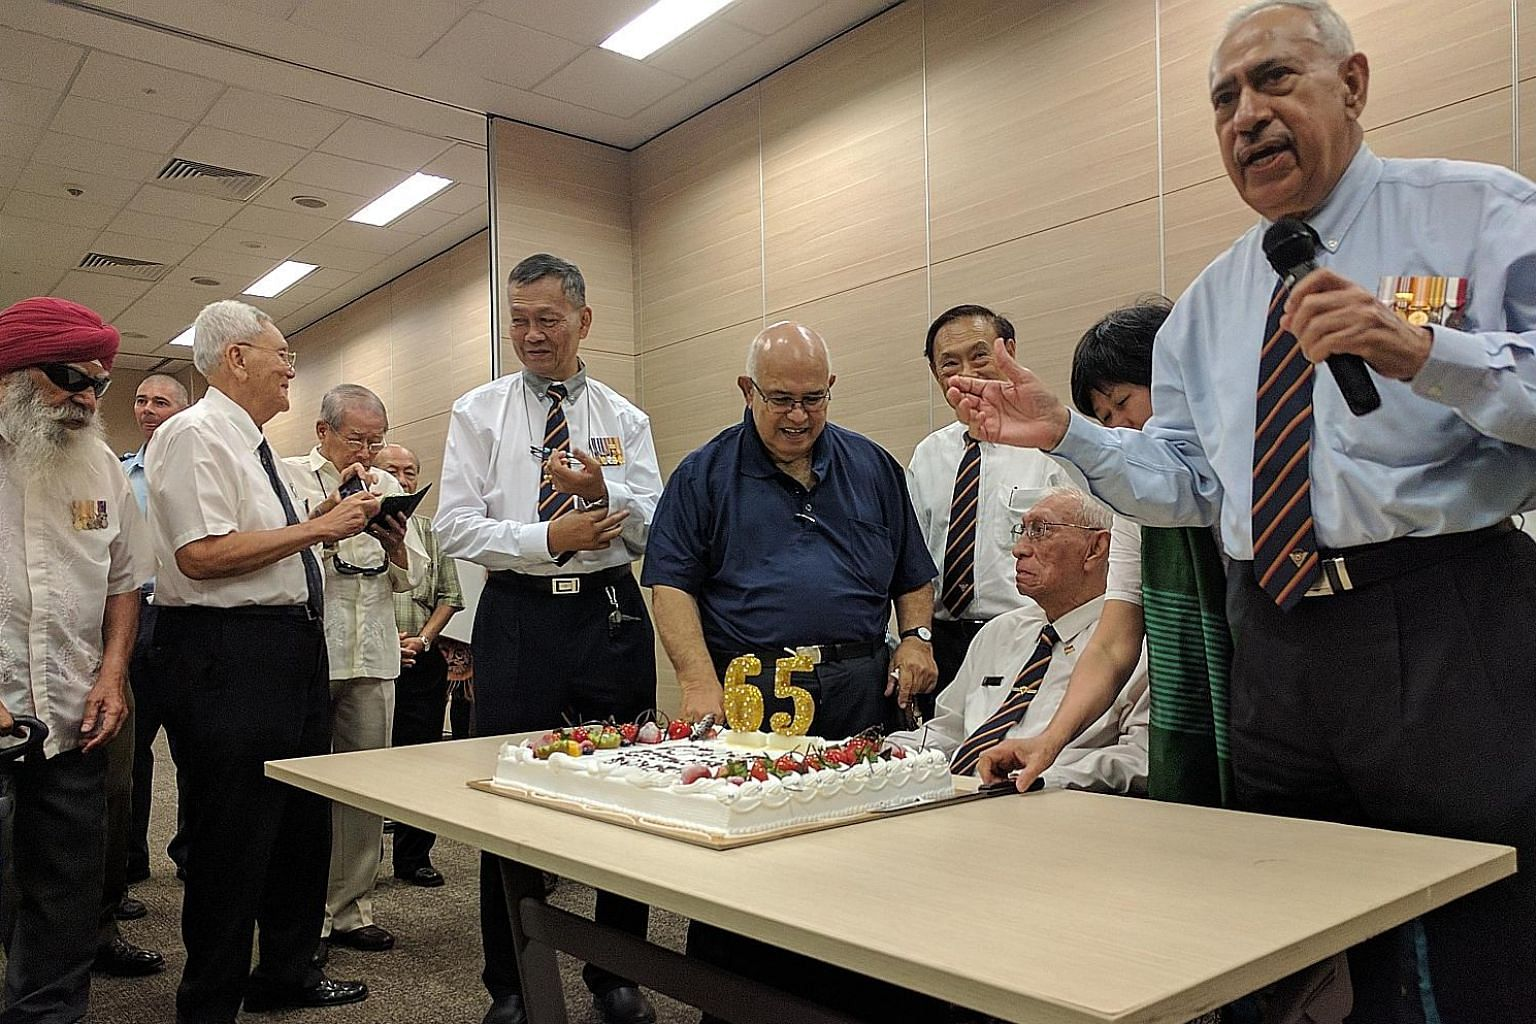 Mr Roland Simon (seated) and other veterans from the Malayan Royal Naval Volunteer Reserve's Singapore division with the anniversary cake at yesterday's lunch event.